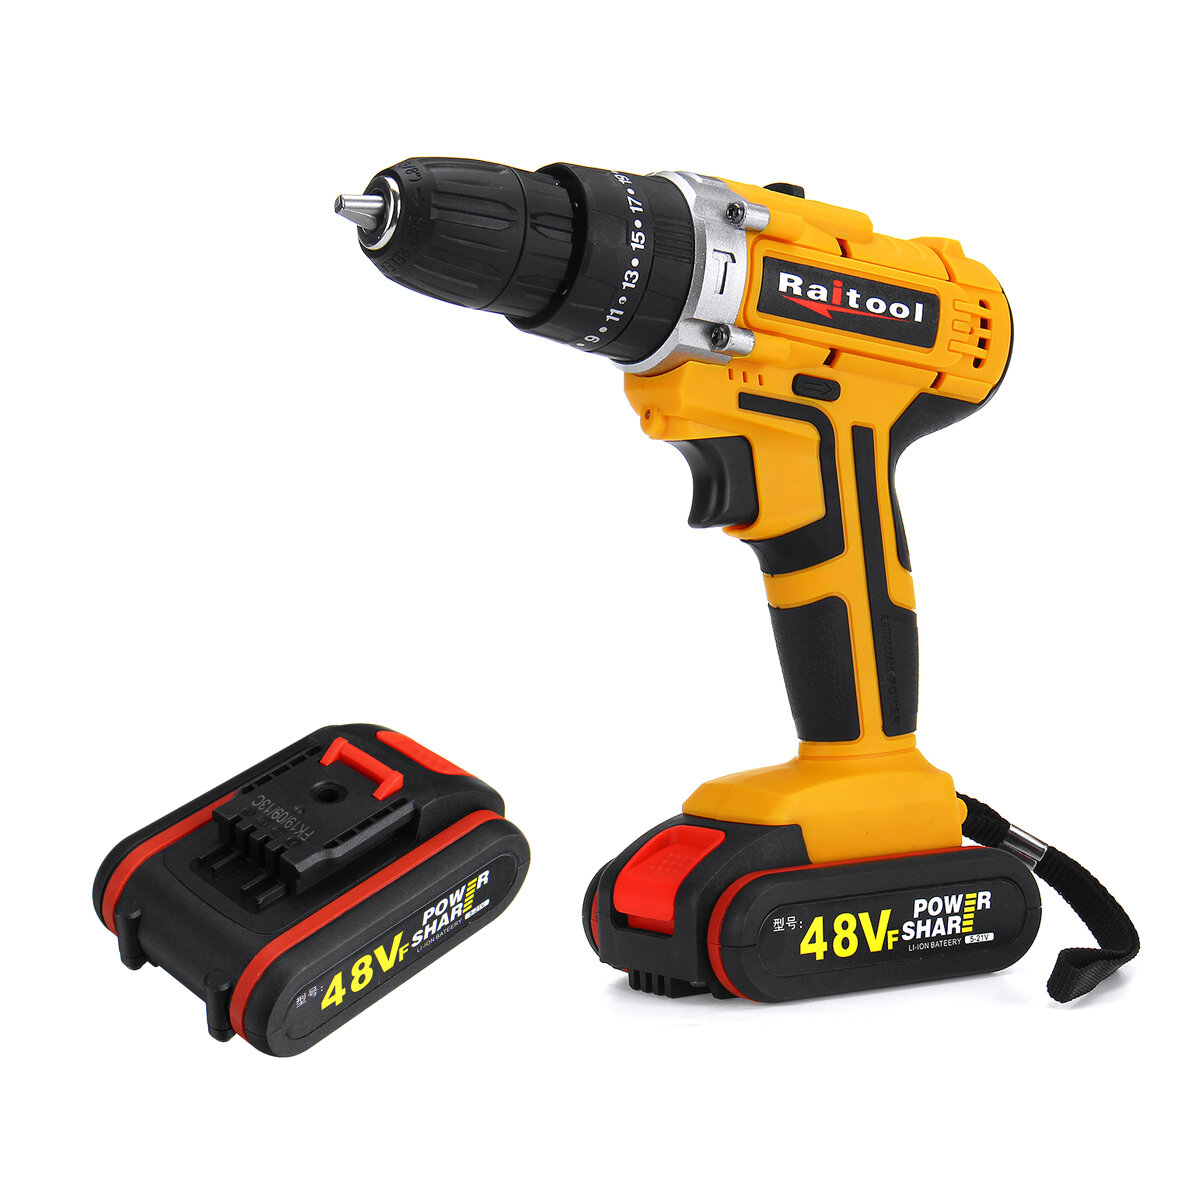 Raitool 48VF Cordless Electric Impact Drill Rechargeable 3/8 inch Drill Screwdriver W/...